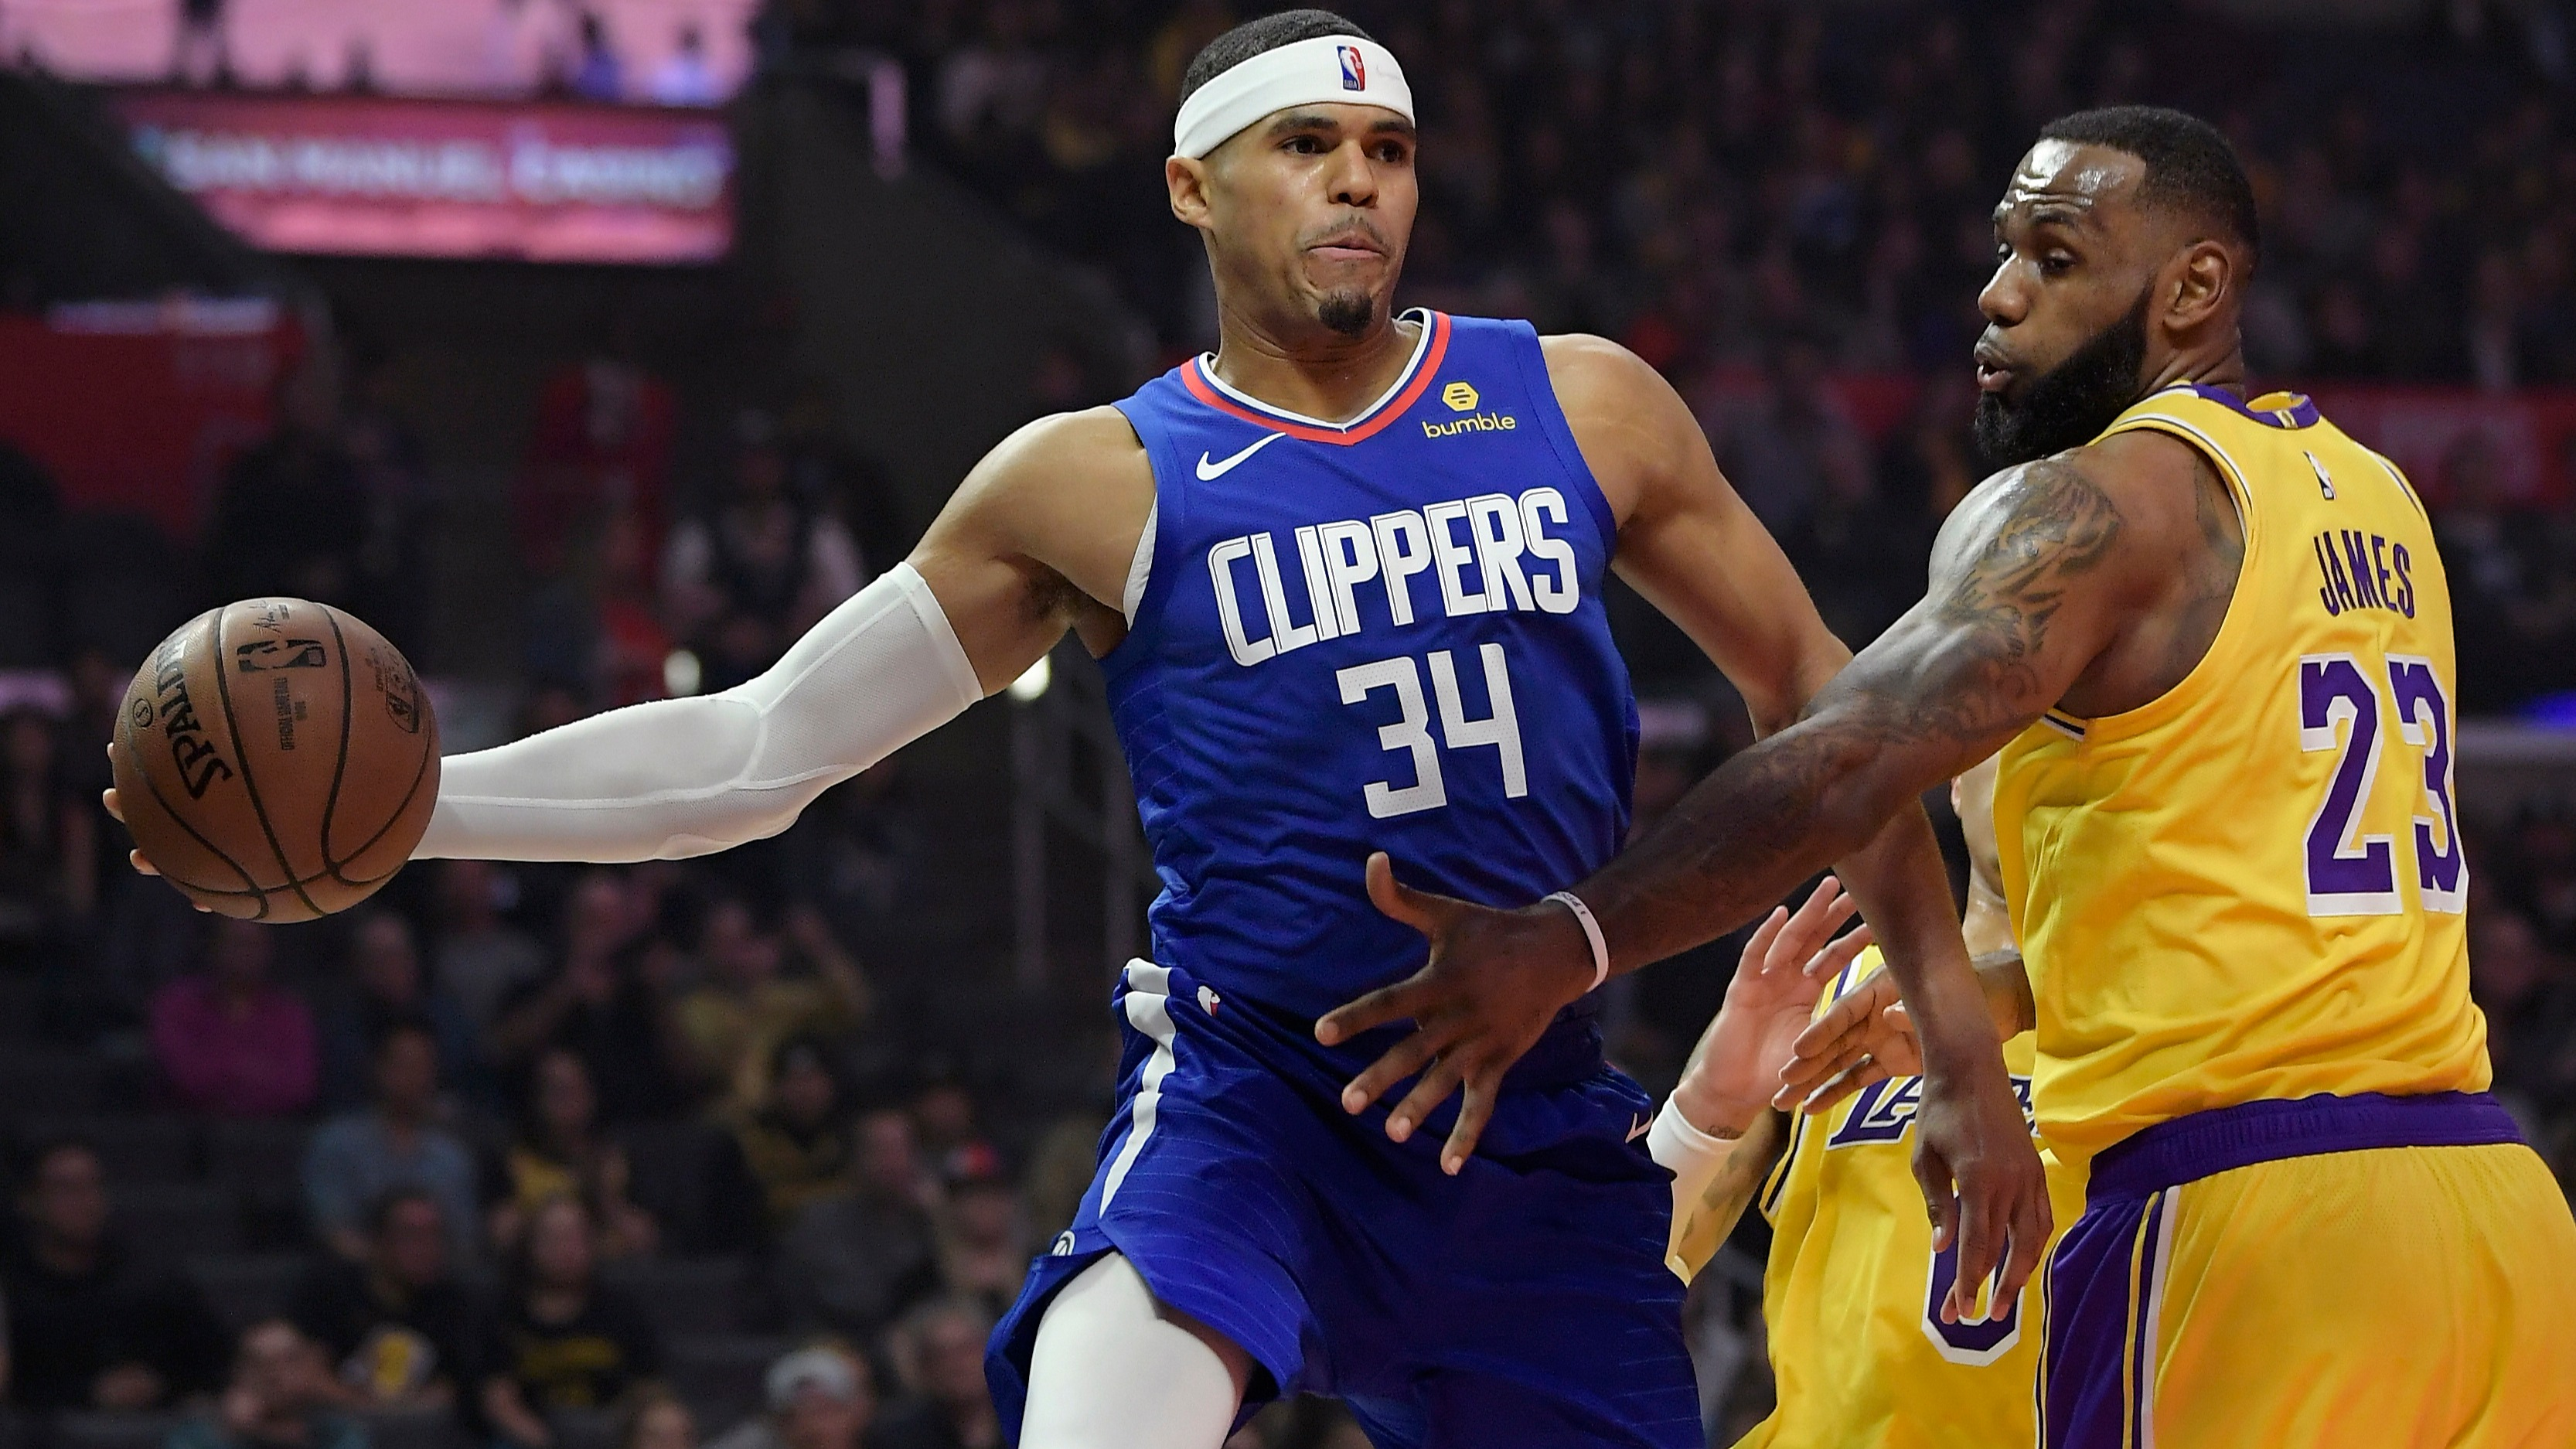 d7c4a7e49d12 Lakers at 76ers betting lines